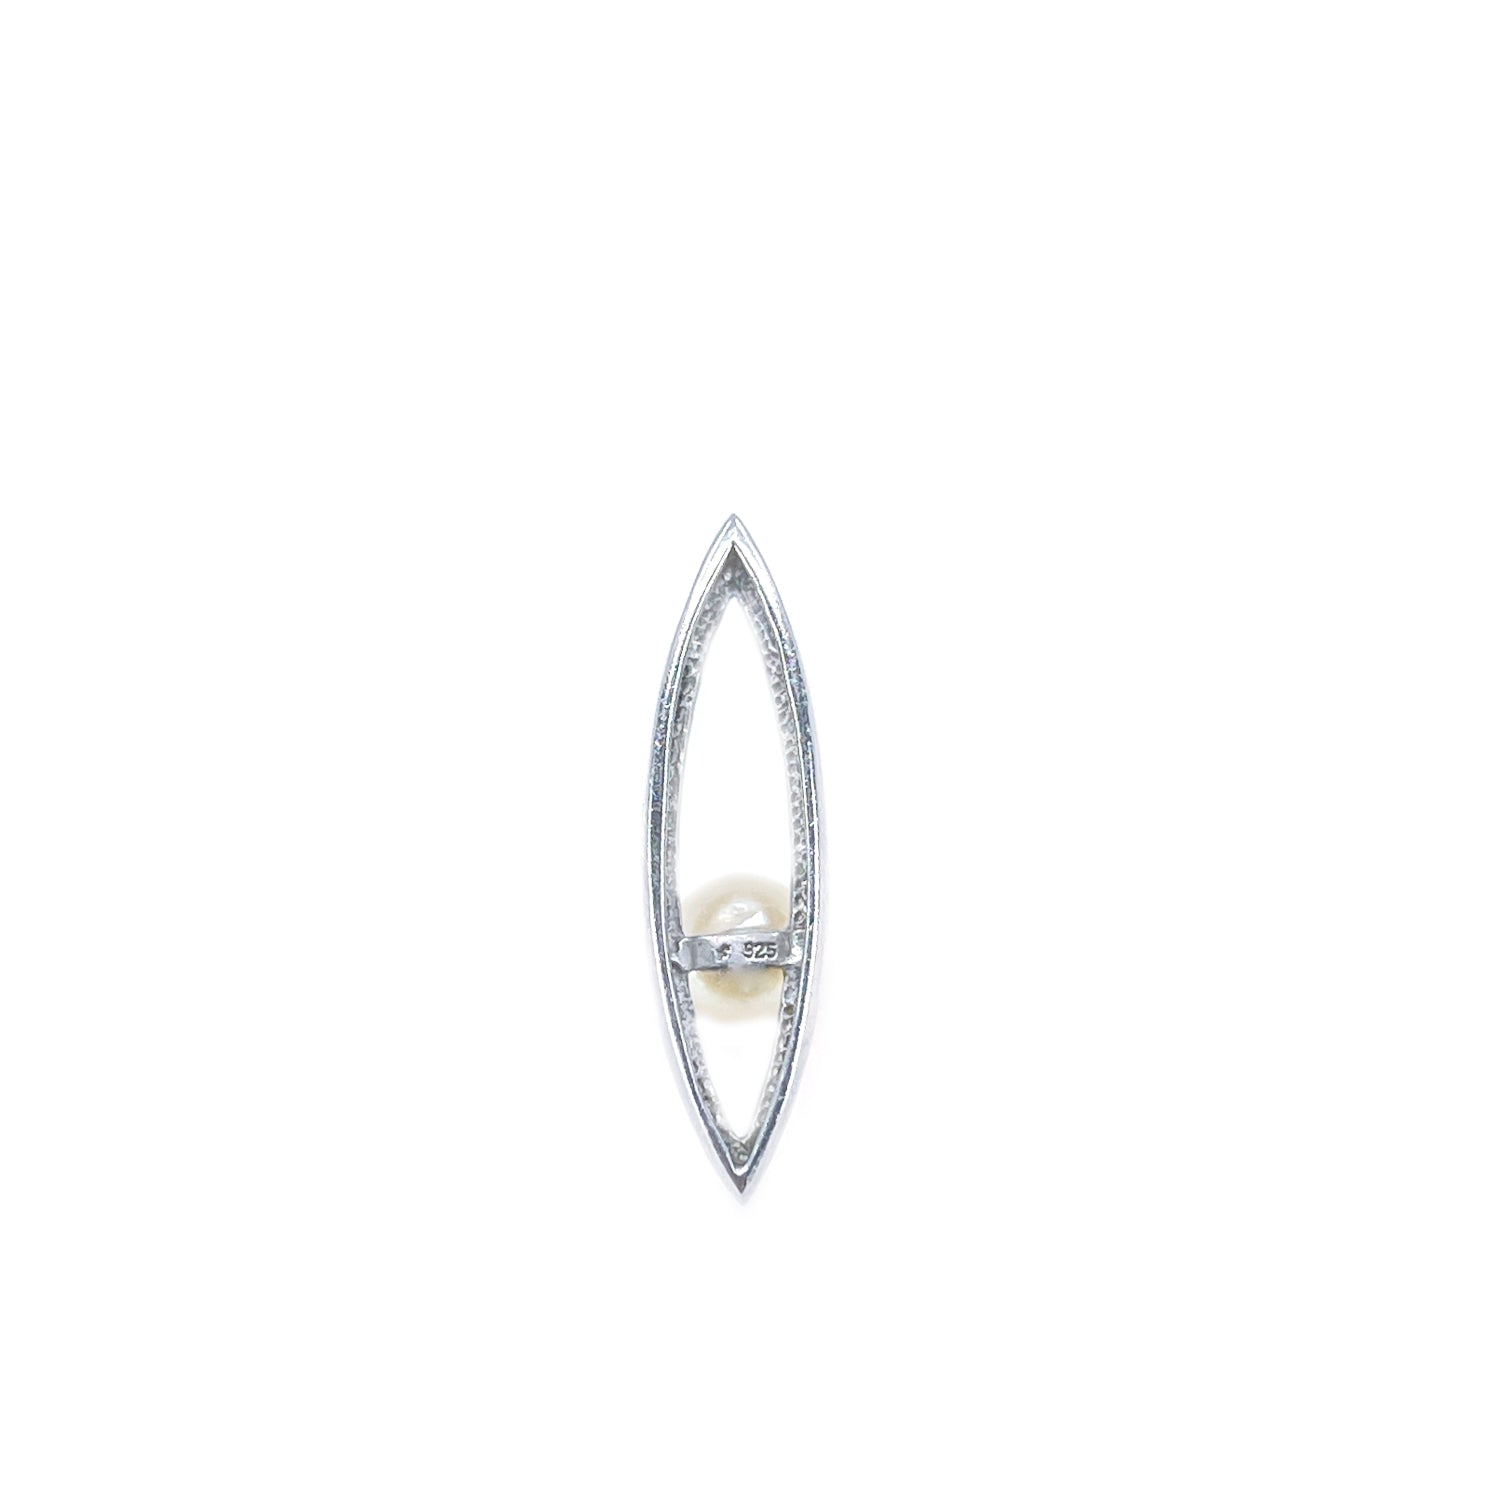 Marquise Japanese Saltwater Cultured Akoya Retro Pendant- Sterling Silver